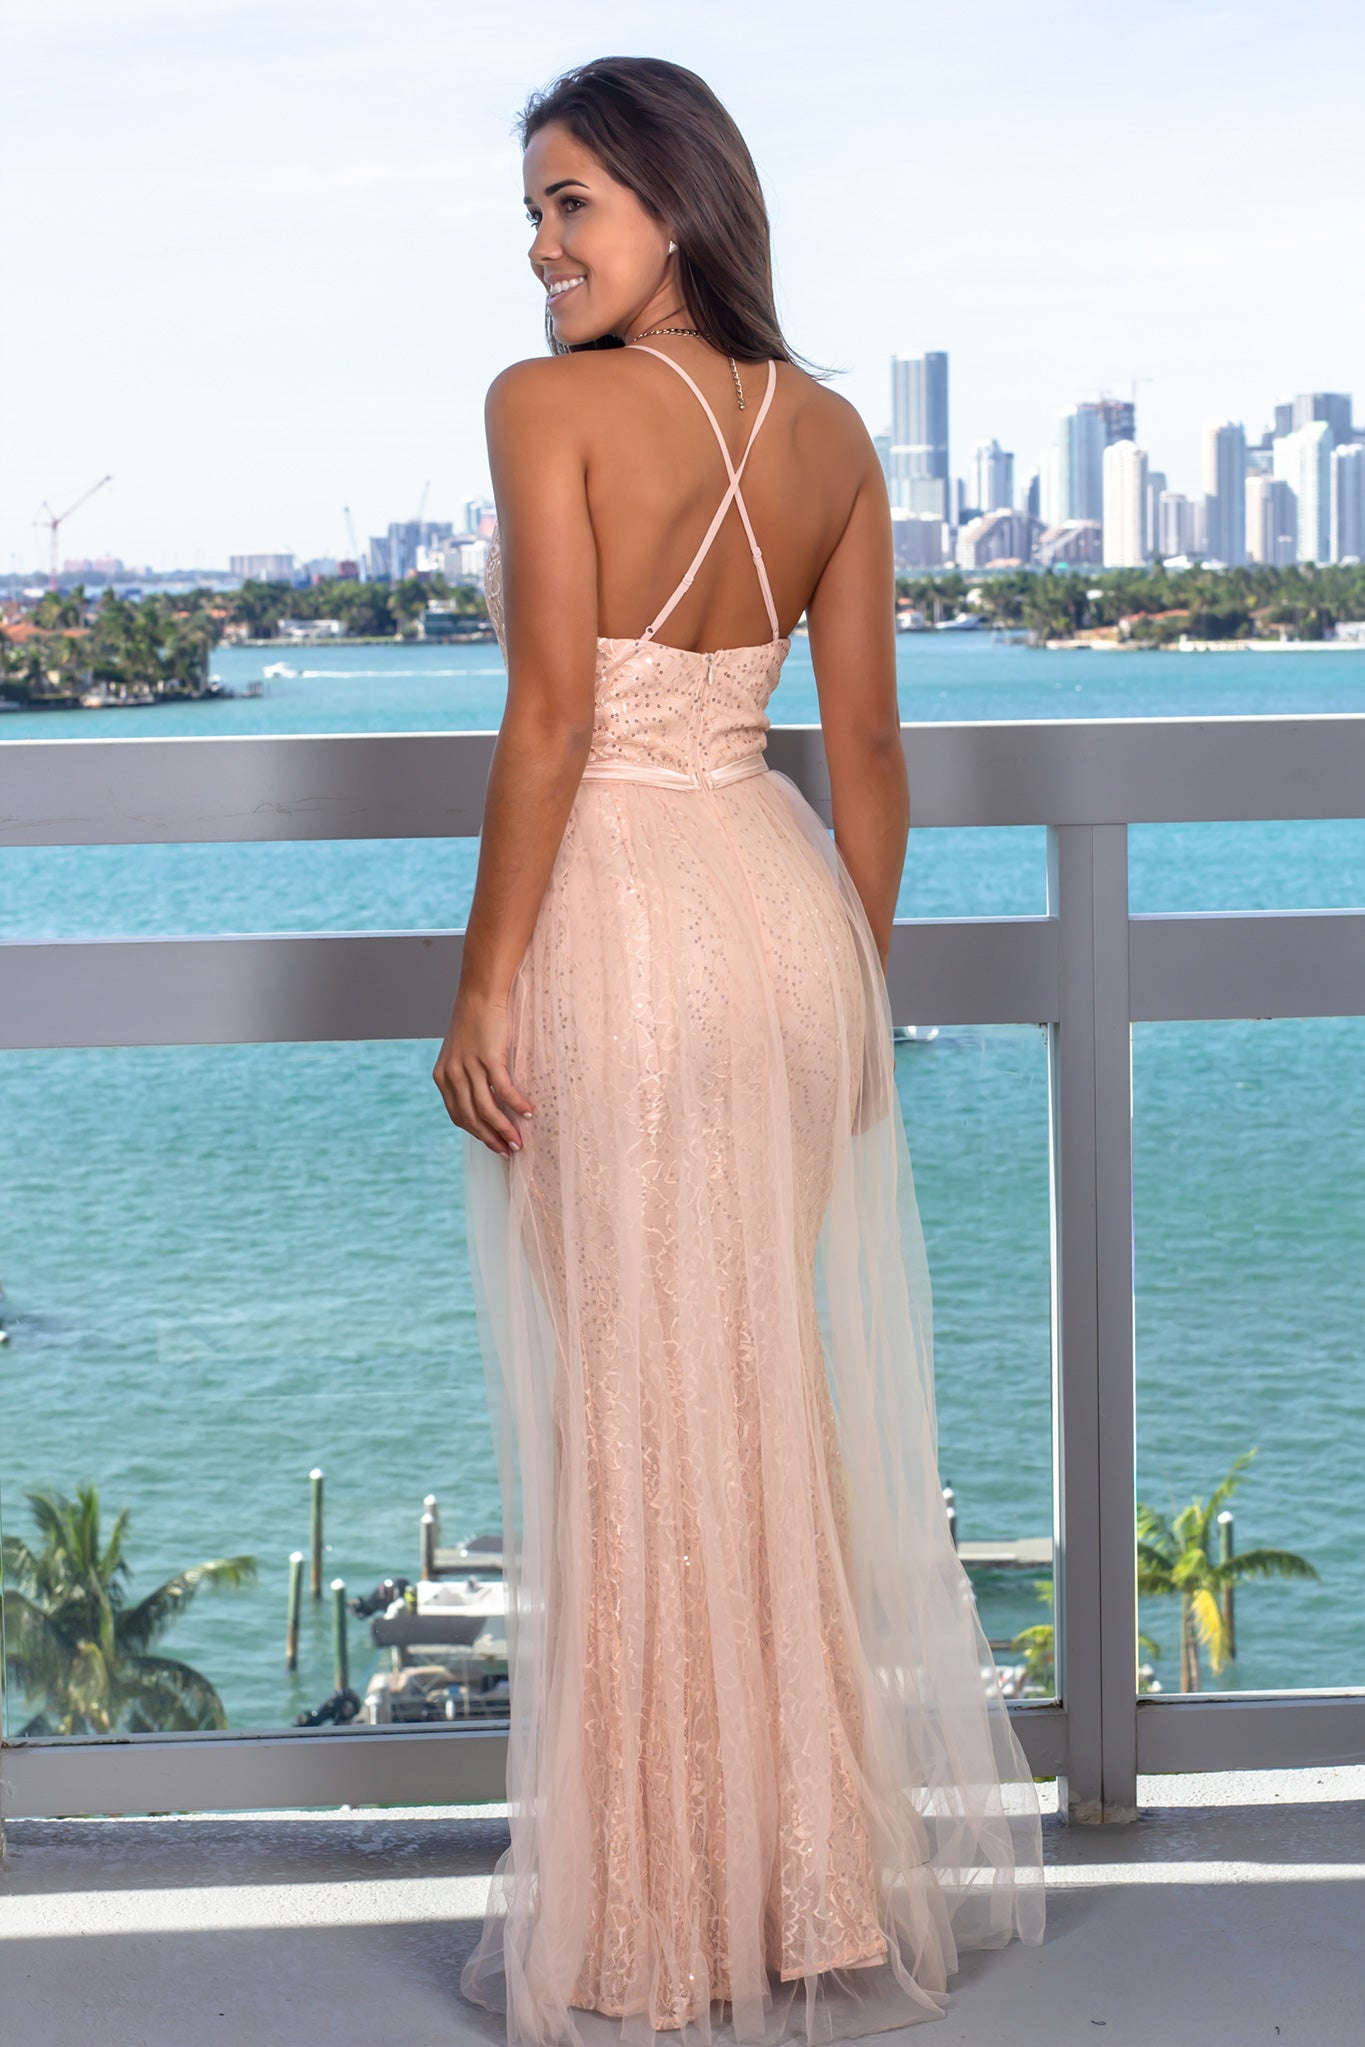 ee13b6a5d4 Blush Lace Maxi Dress with Tulle Detail  Dresses  Dress Boutiques  Maxi  Dresses ...